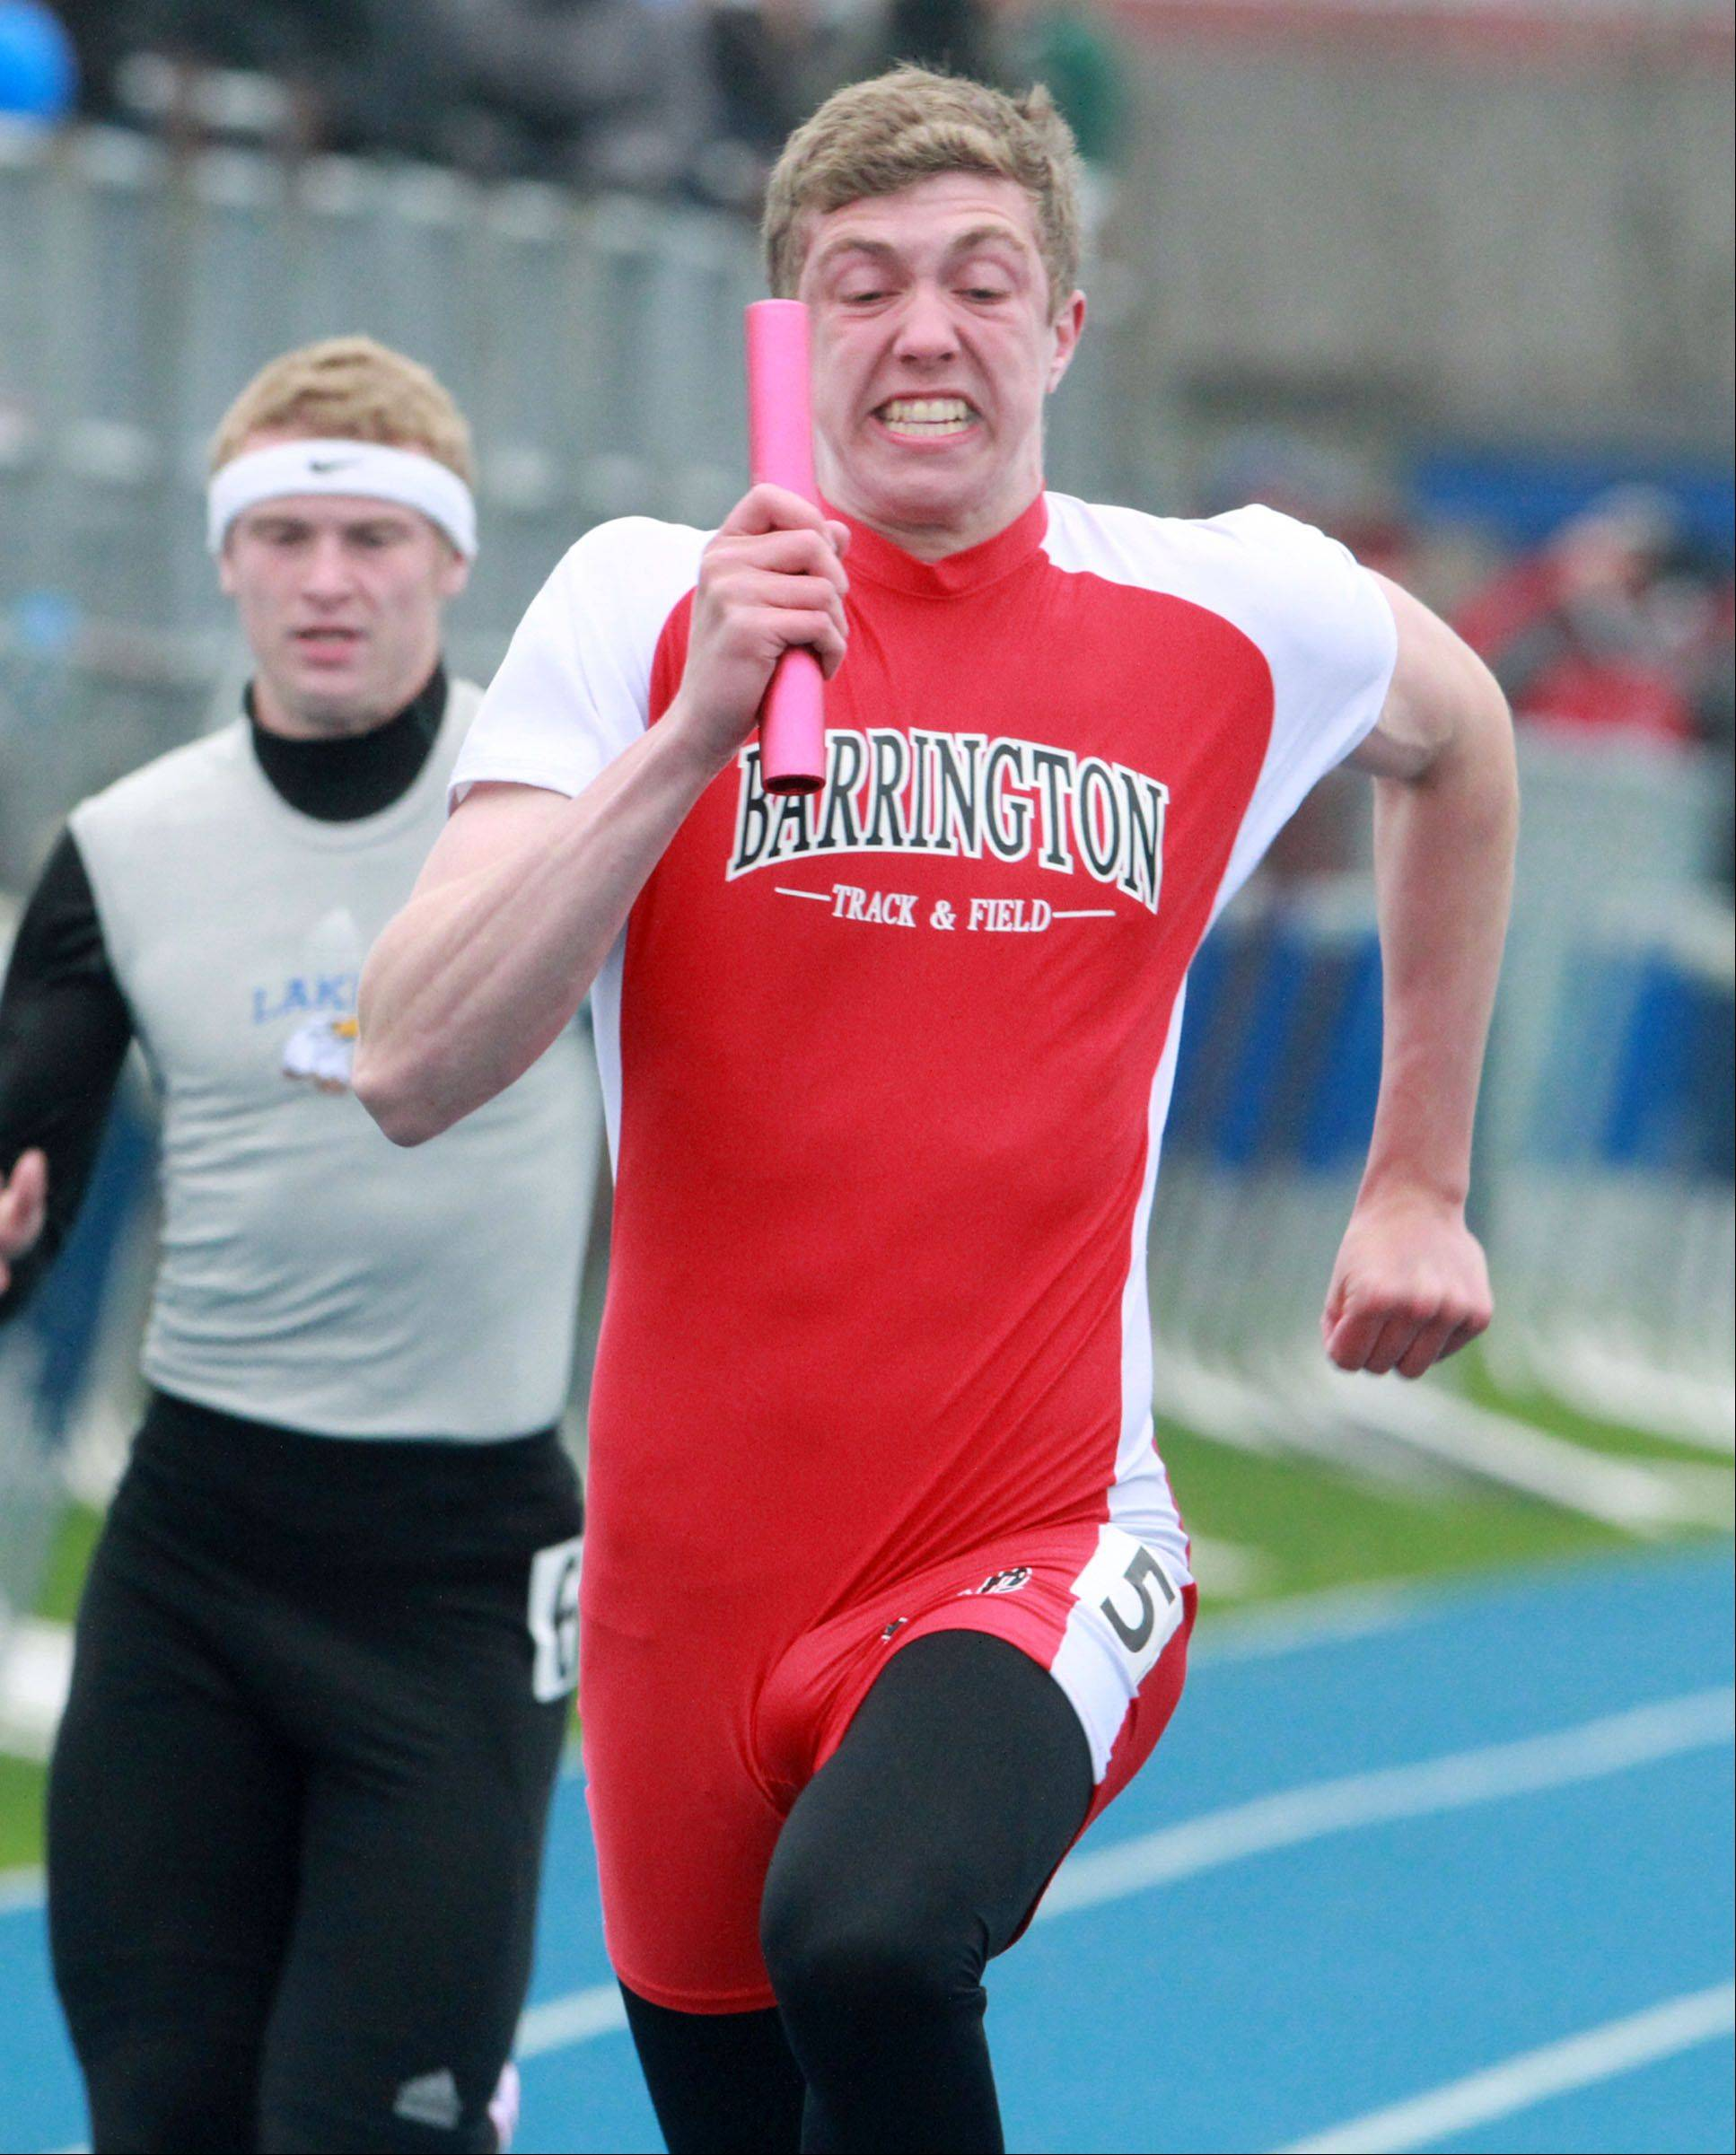 Parker DeLoye runs the last leg as Barrington wins the 4 x 100-meter relay in last spring's Lake County meet at Lake Zurich. DeLoye has committed to a track and field future at Kentucky.